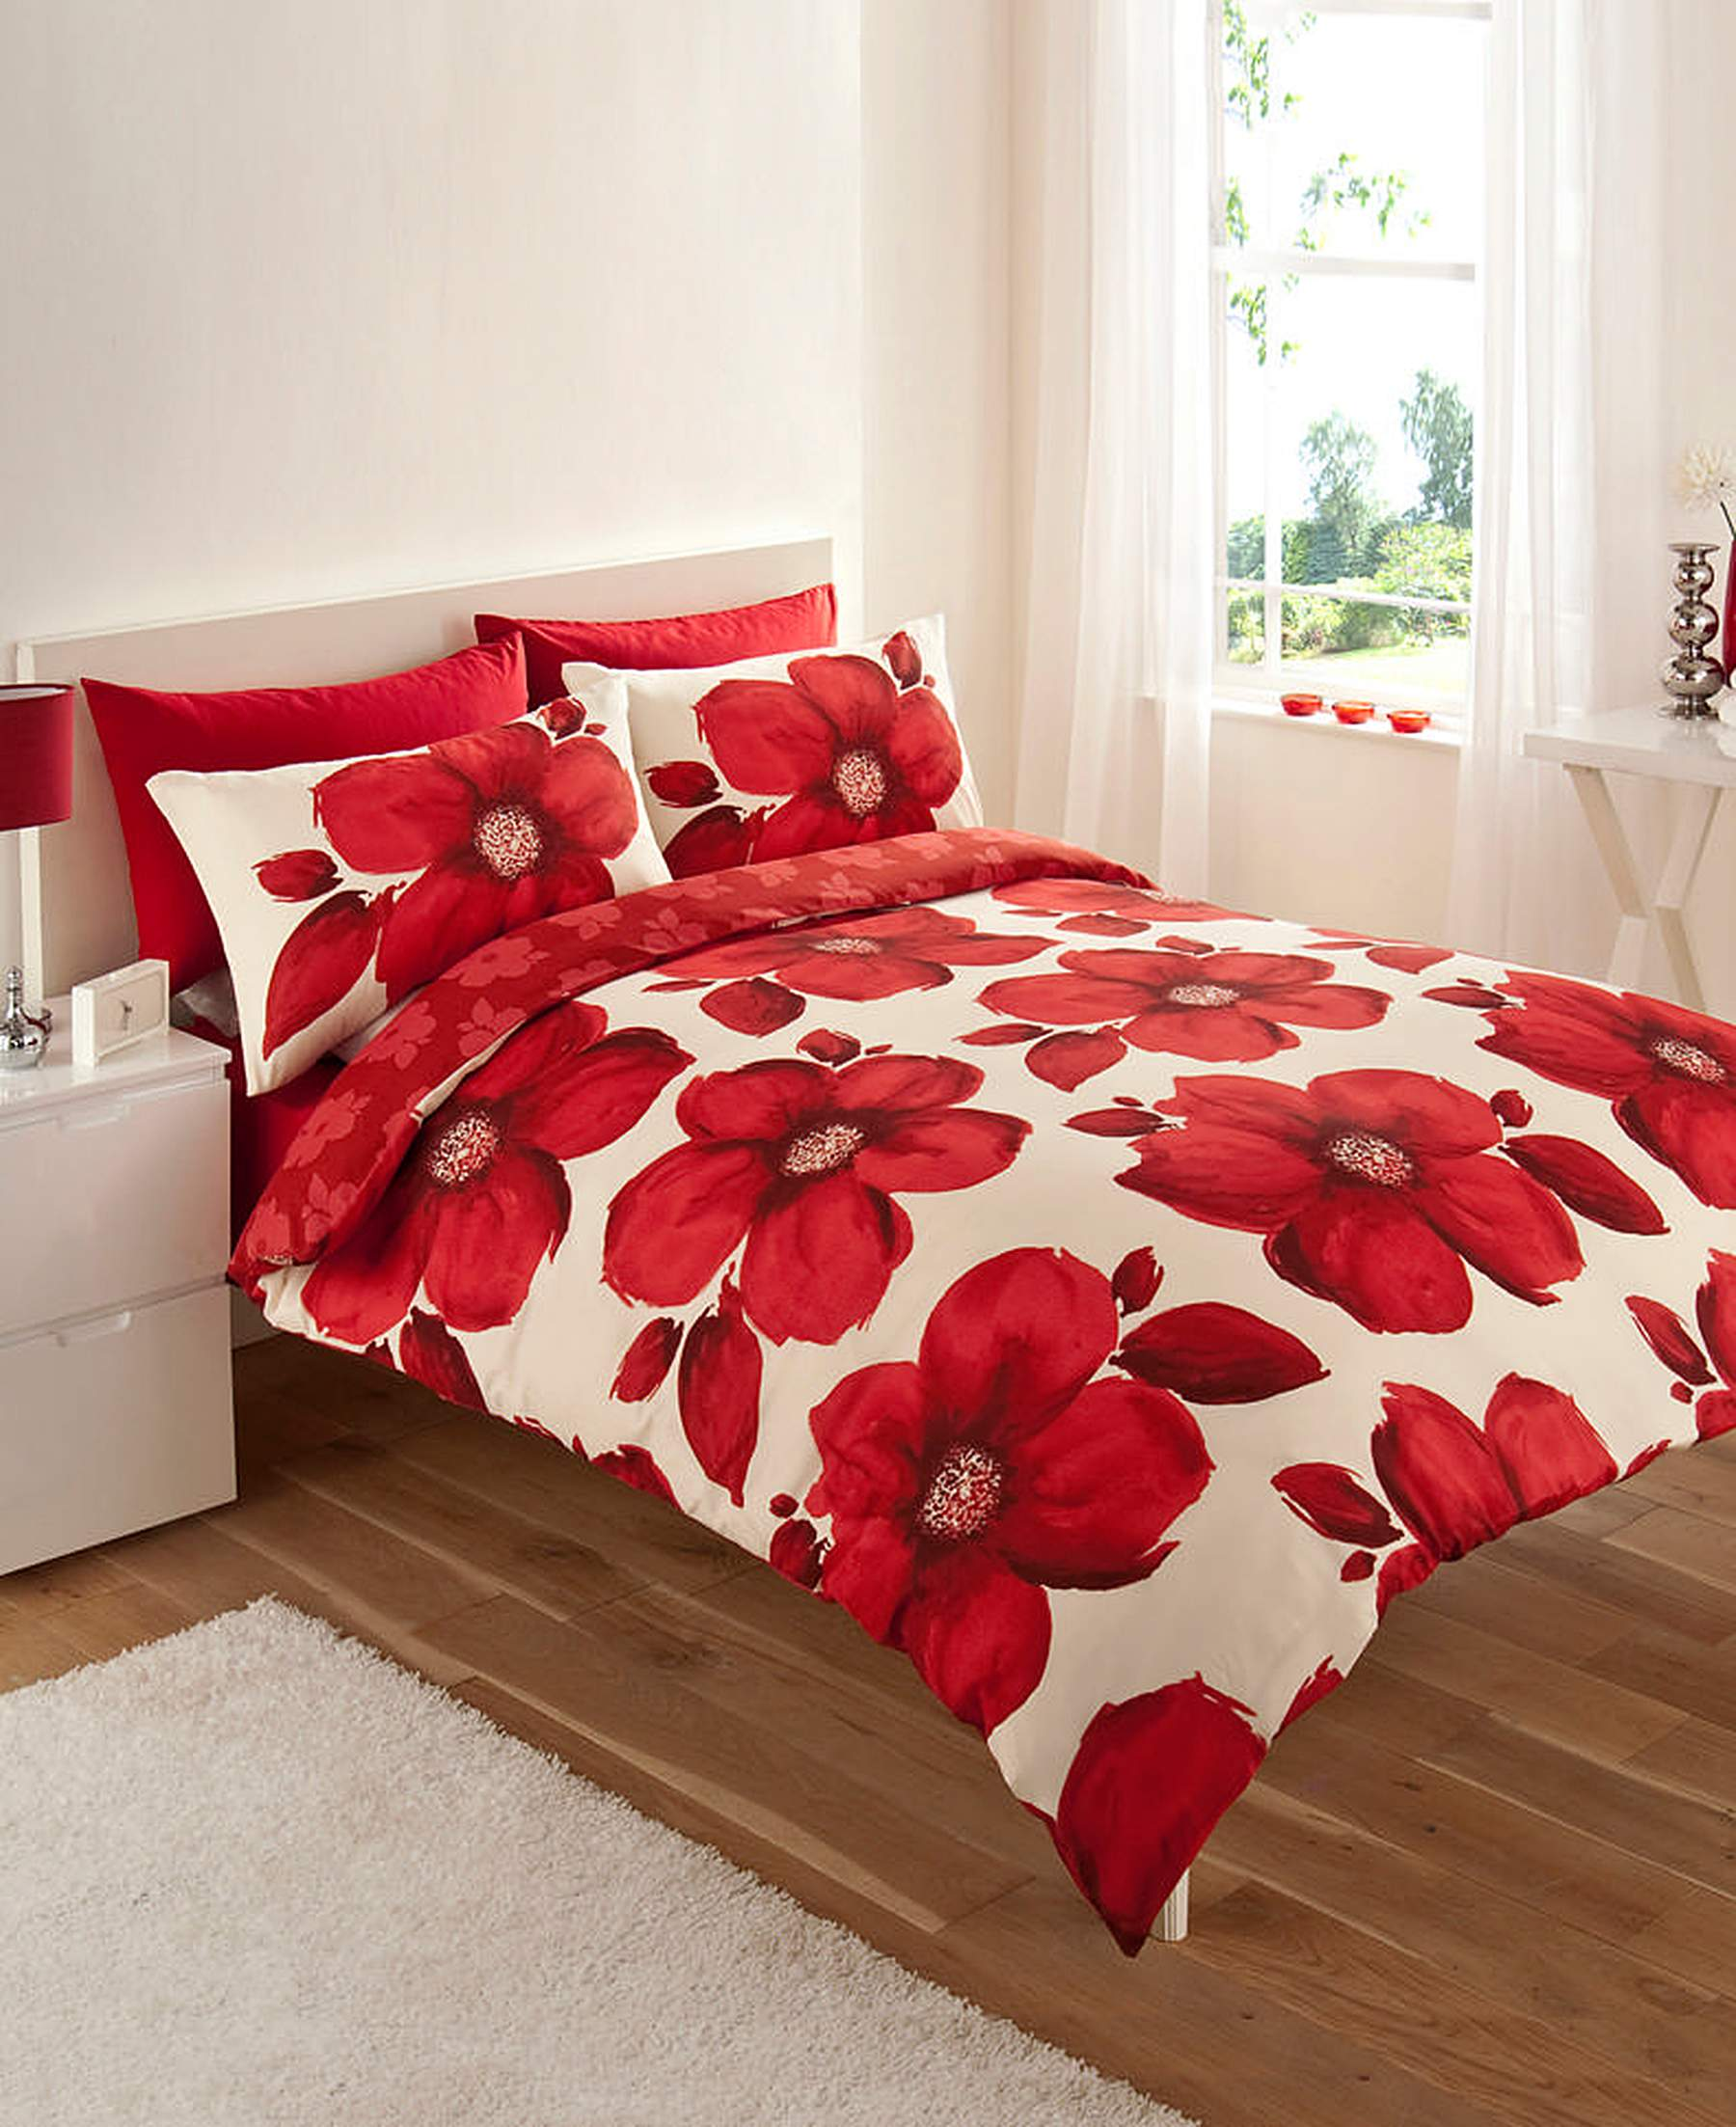 Red Poppy Duvet Cover Sweetgalas Pictures